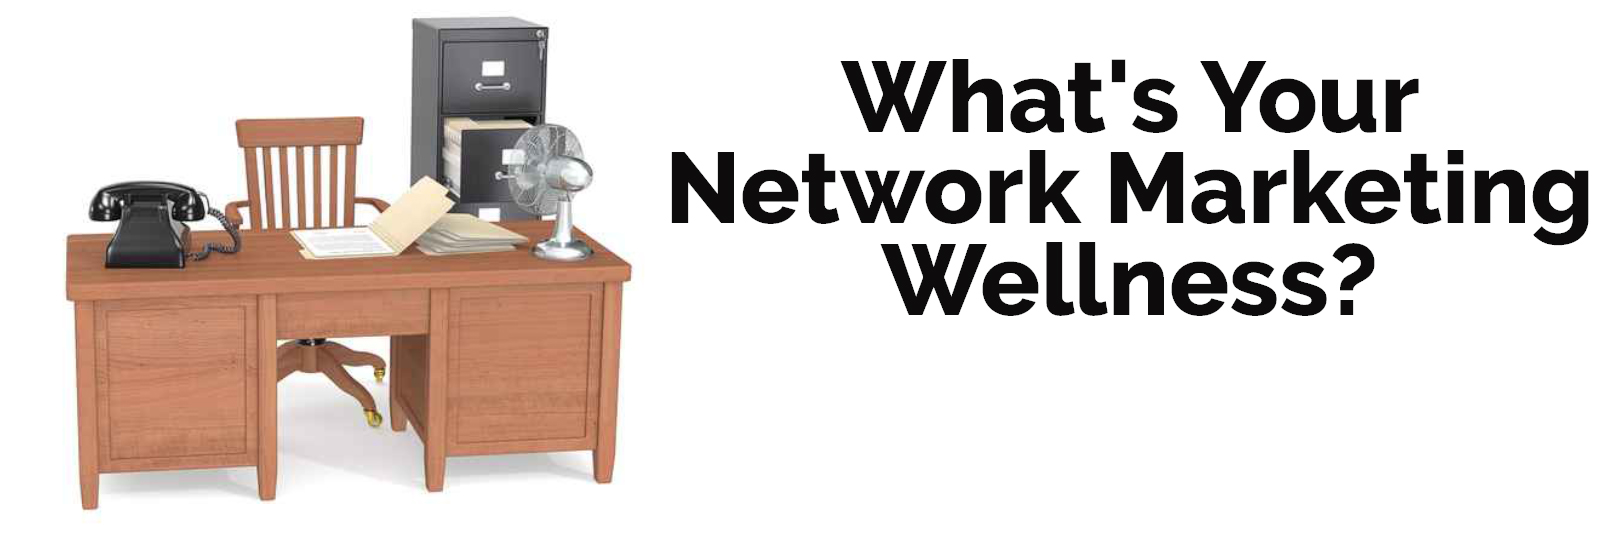 What's Your Network Marketing Wellness?